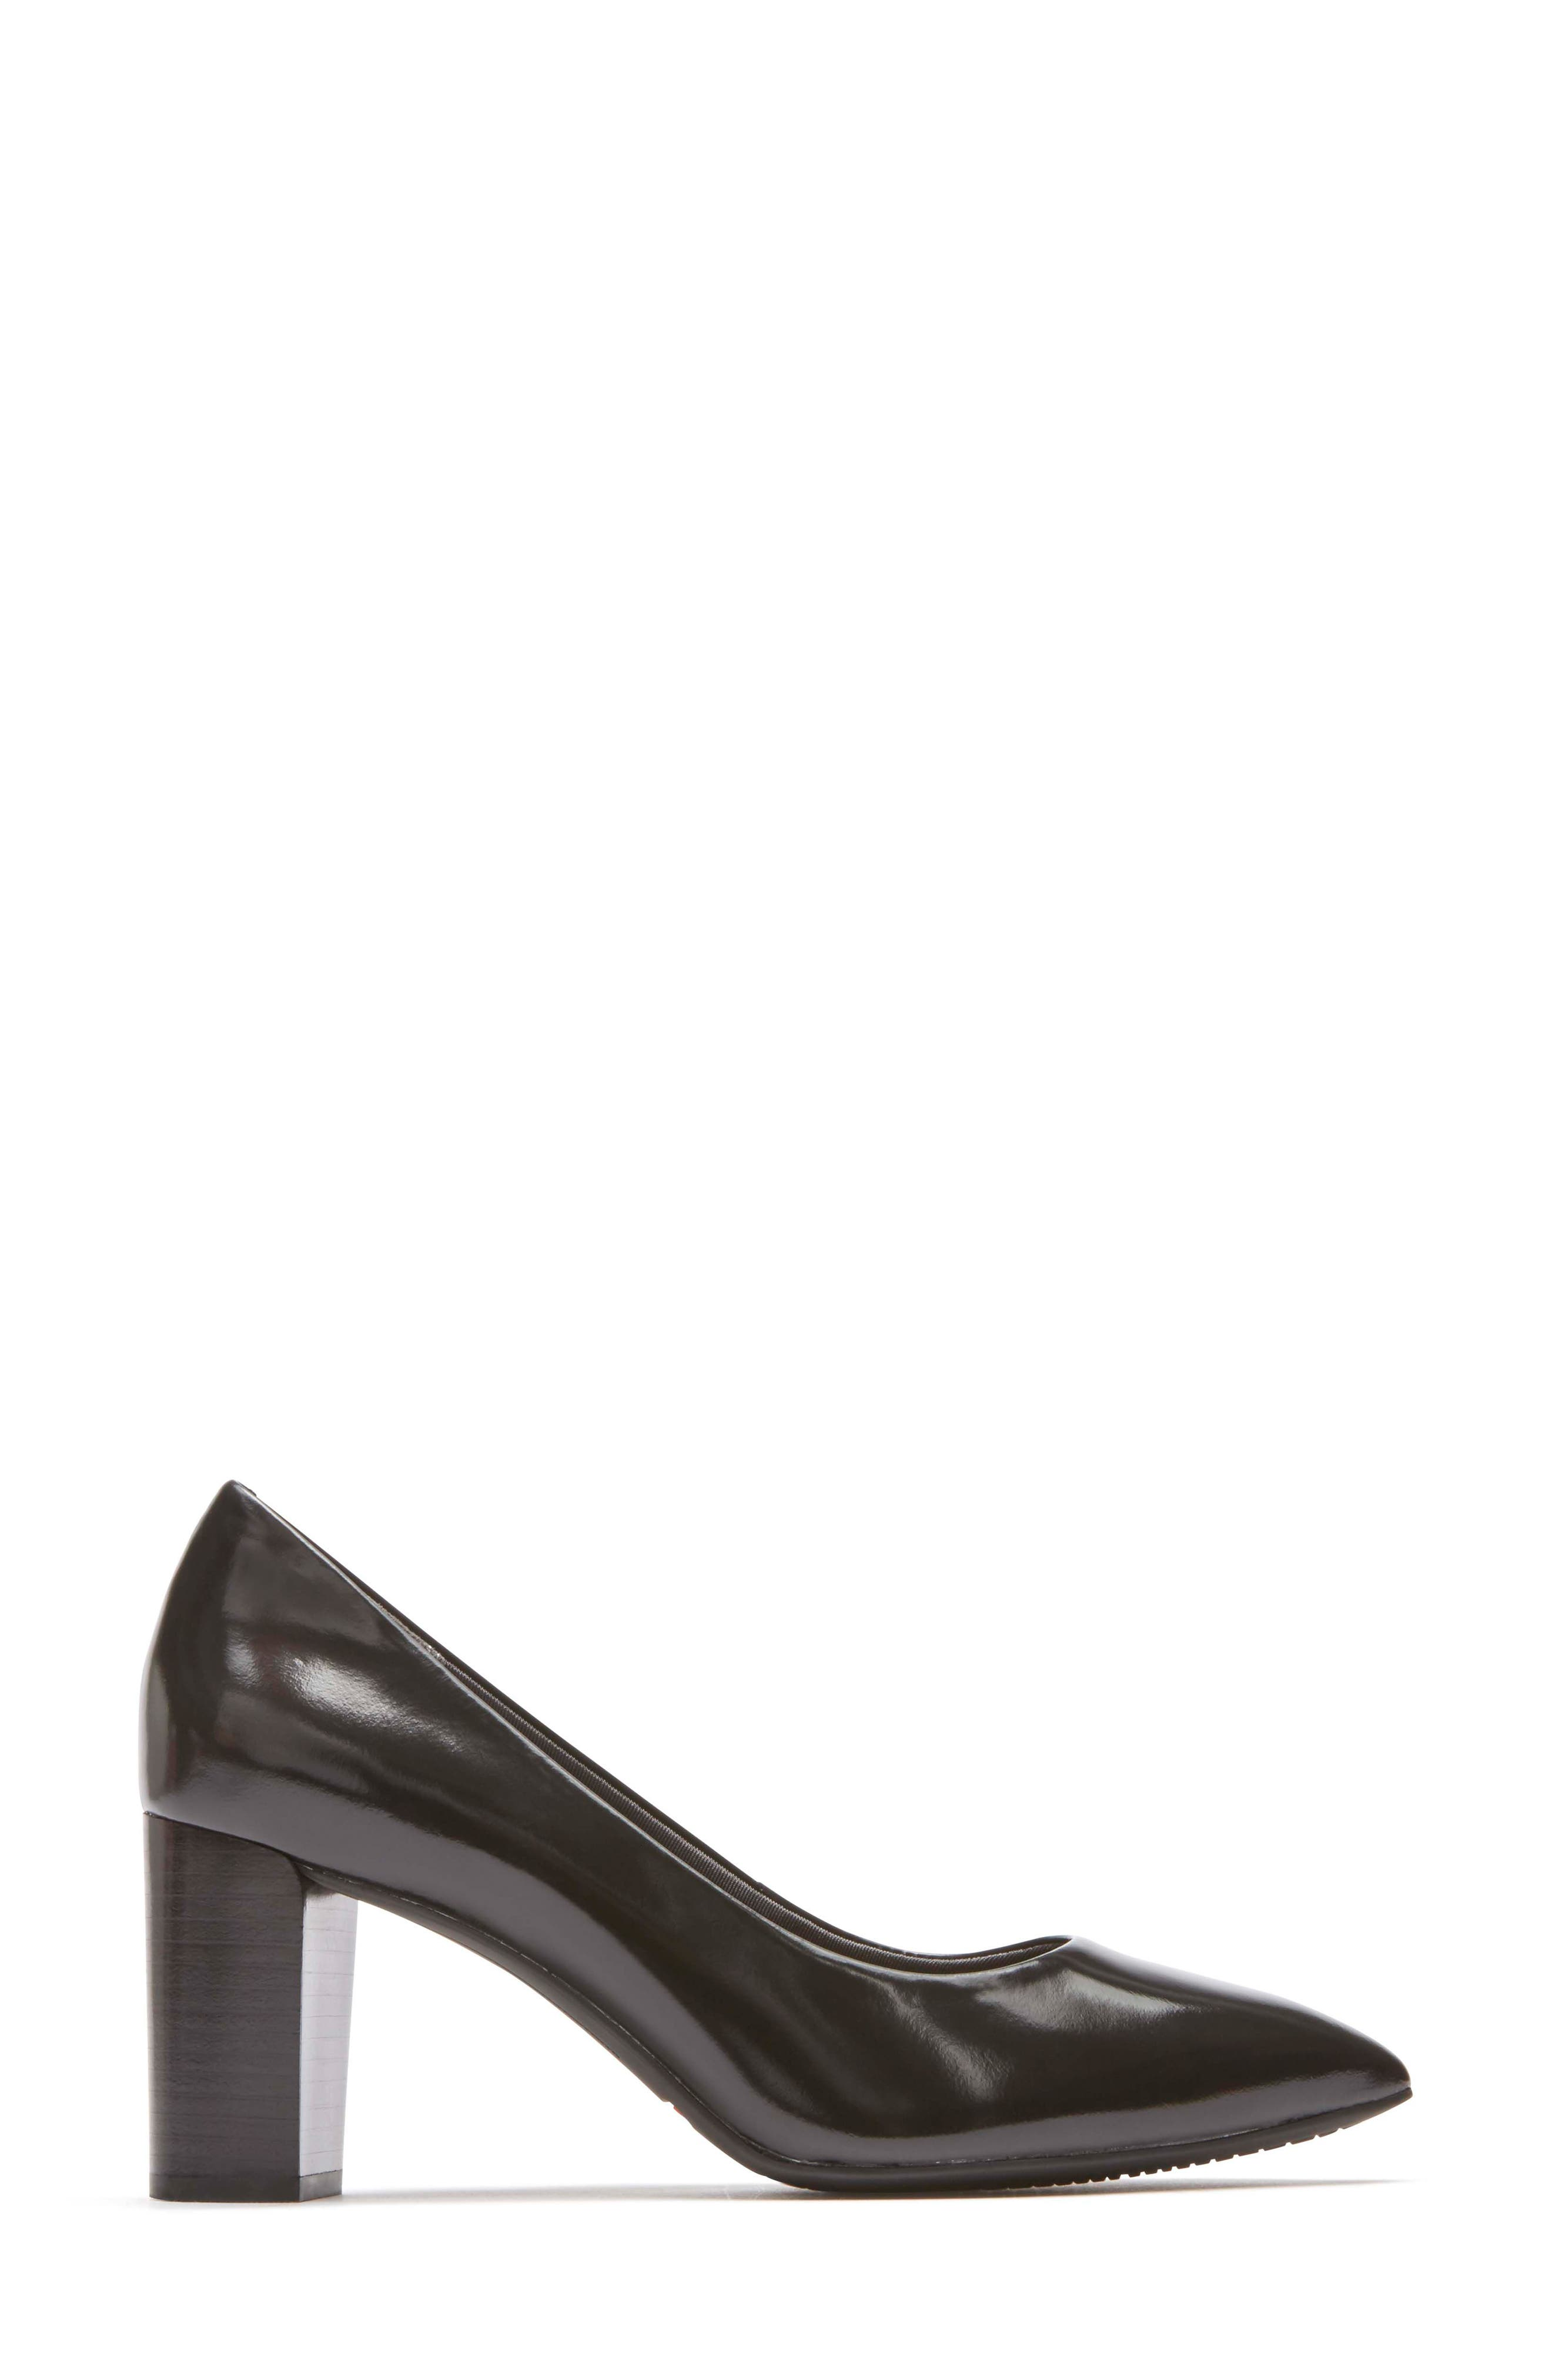 Total Motion Violina Luxe Pointy Toe Pump,                             Alternate thumbnail 3, color,                             BLACK PATENT LEATHER